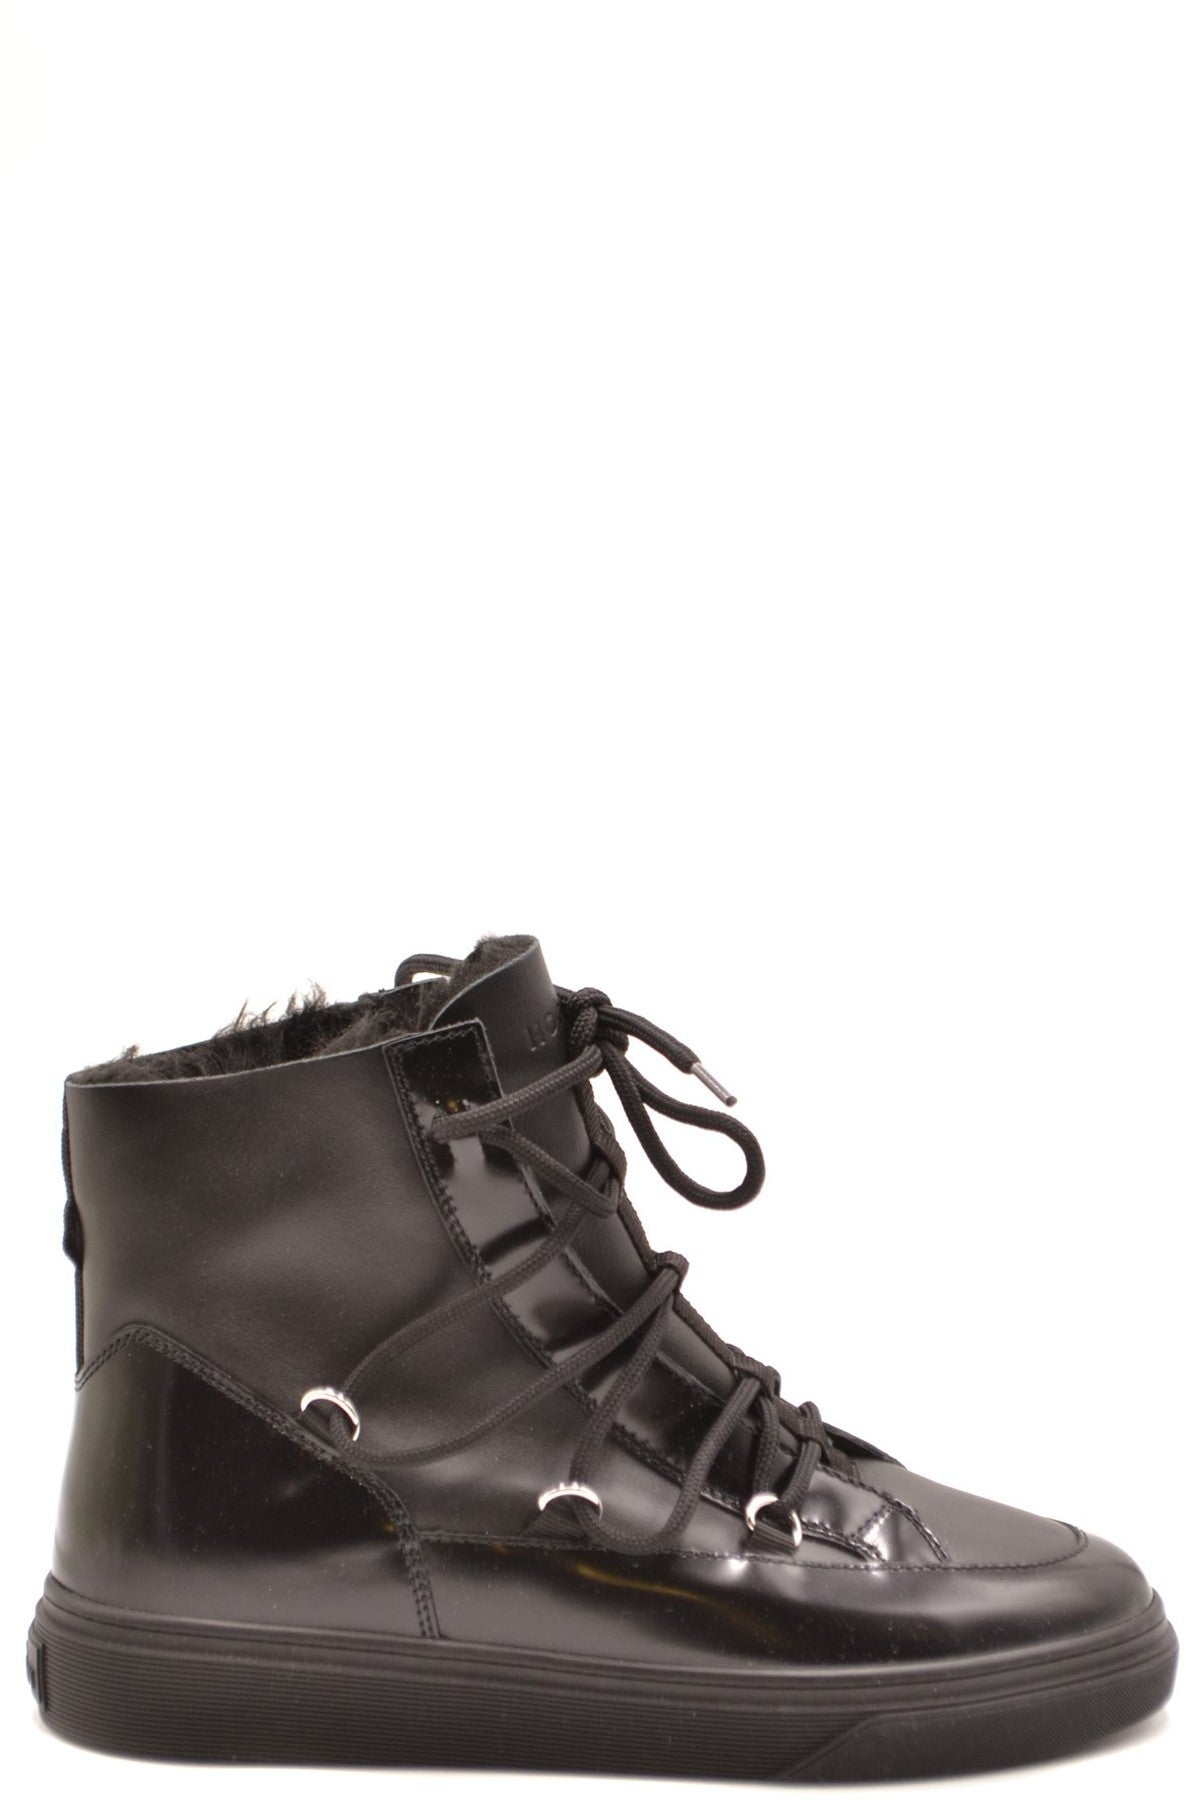 Shoes Hogan-Women's Fashion - Women's Shoes - Women's Boots-39-Product Details Terms: New With LabelMain Color: BlackType Of Accessory: BootsSeason: Fall / WinterMade In: ItalyGender: WomanSize: EuComposition: Leather 100%Year: 2020Manufacturer Part Number: Hxw3420Z960Hnrb999-Keyomi-Sook